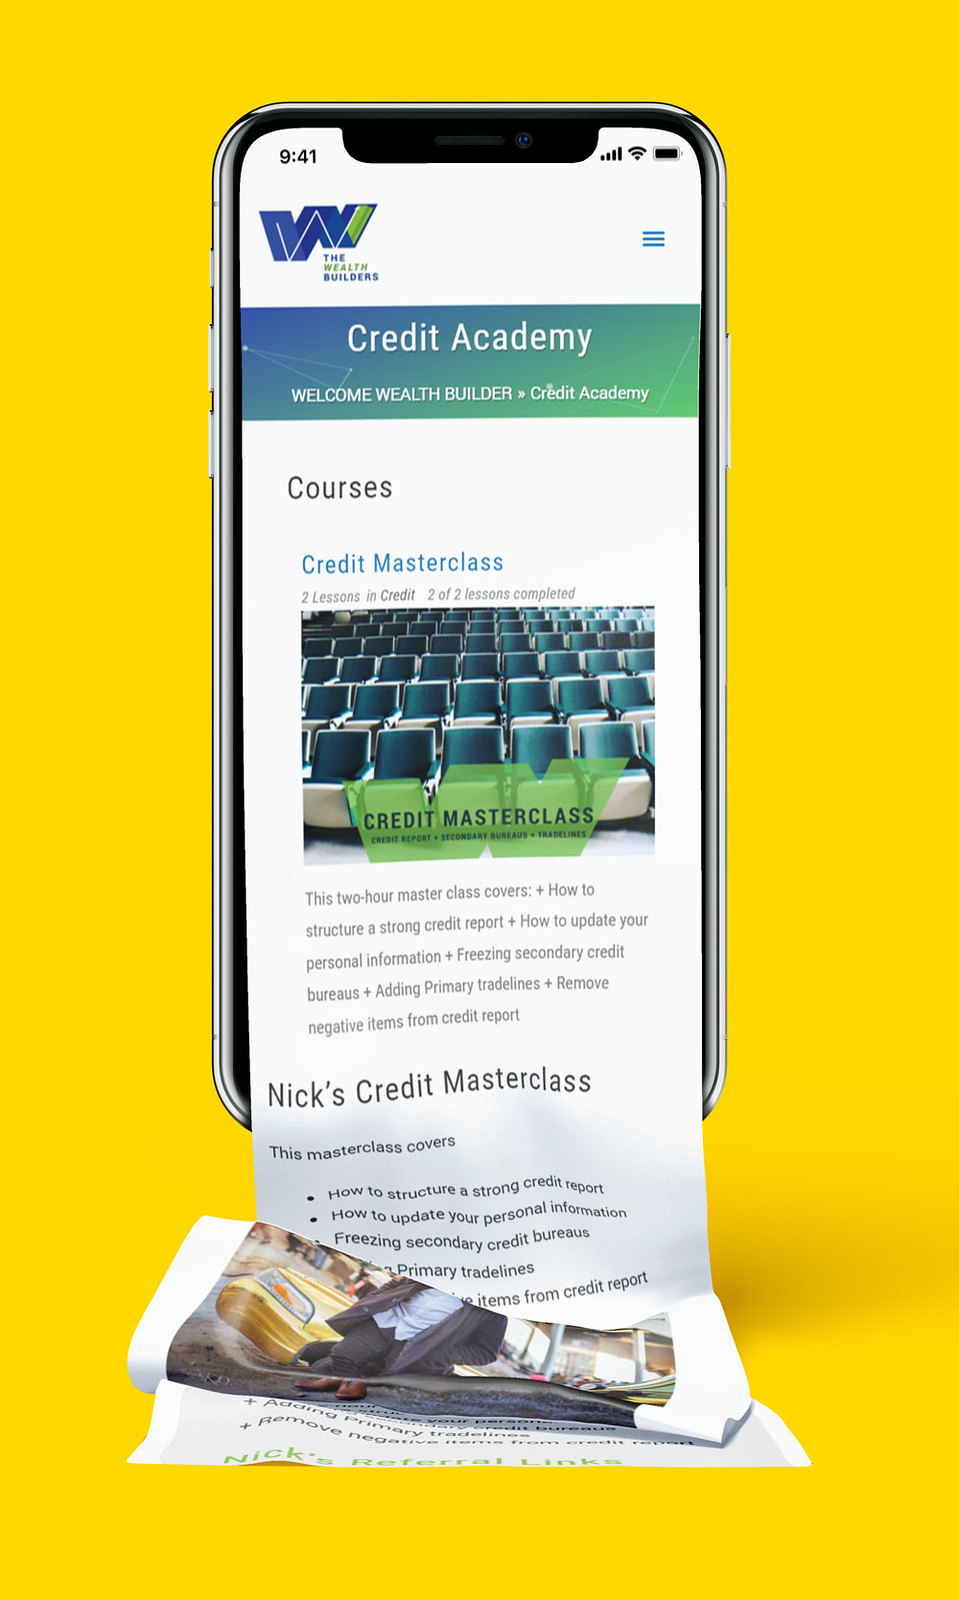 Credit Master Class Page